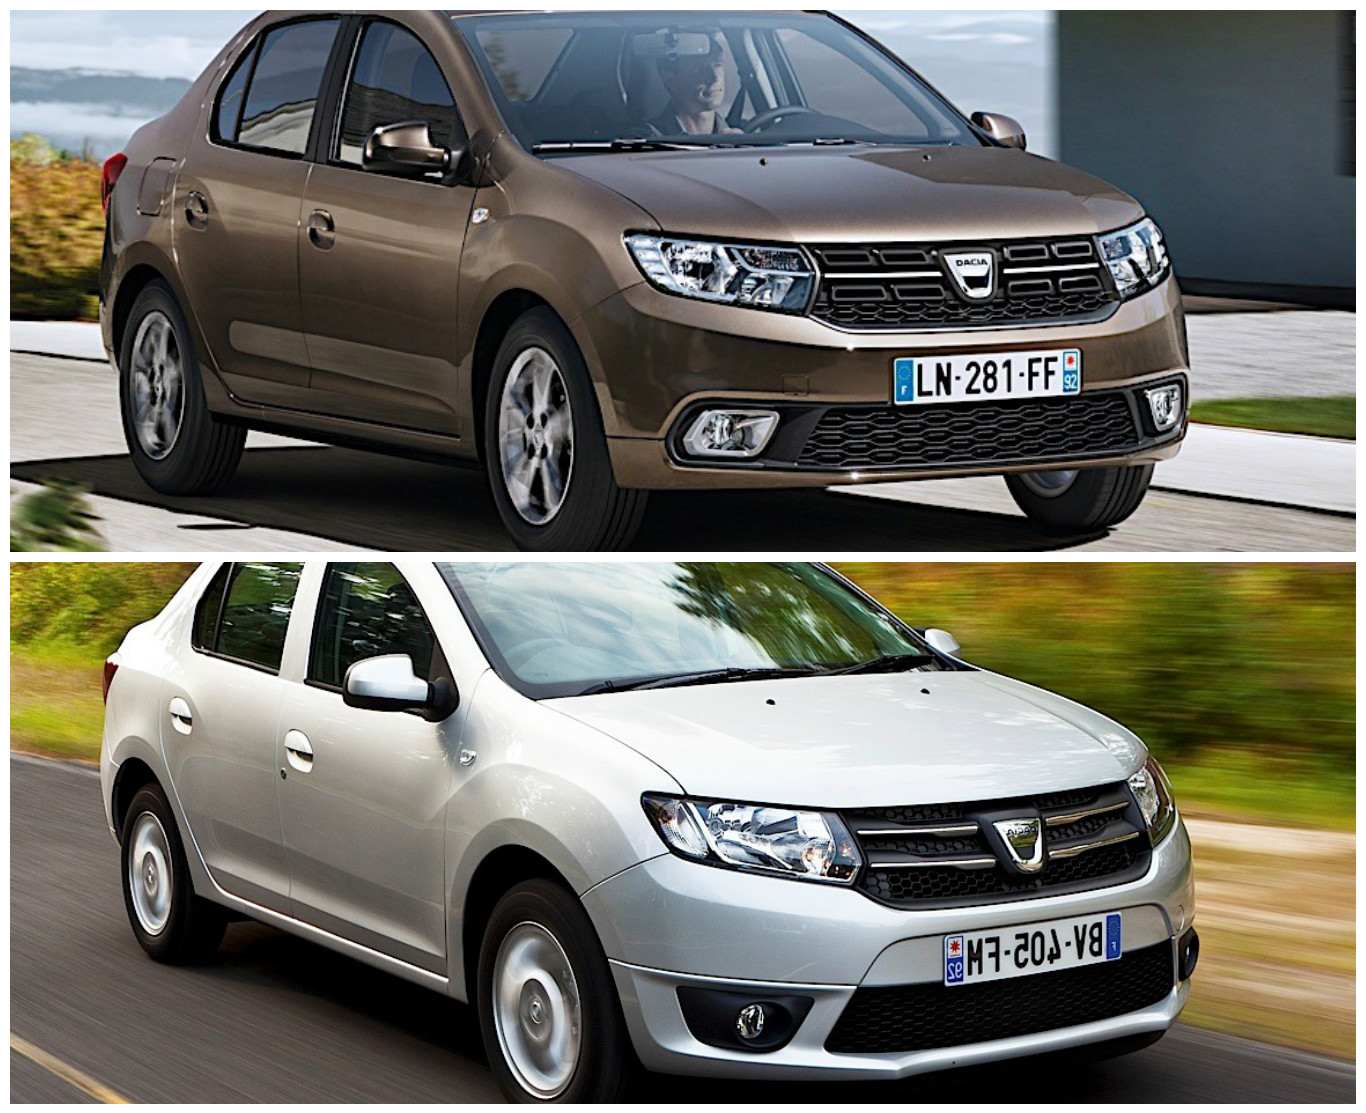 2017 dacia logan facelift photo comparison so what 39 s new autoevolution. Black Bedroom Furniture Sets. Home Design Ideas